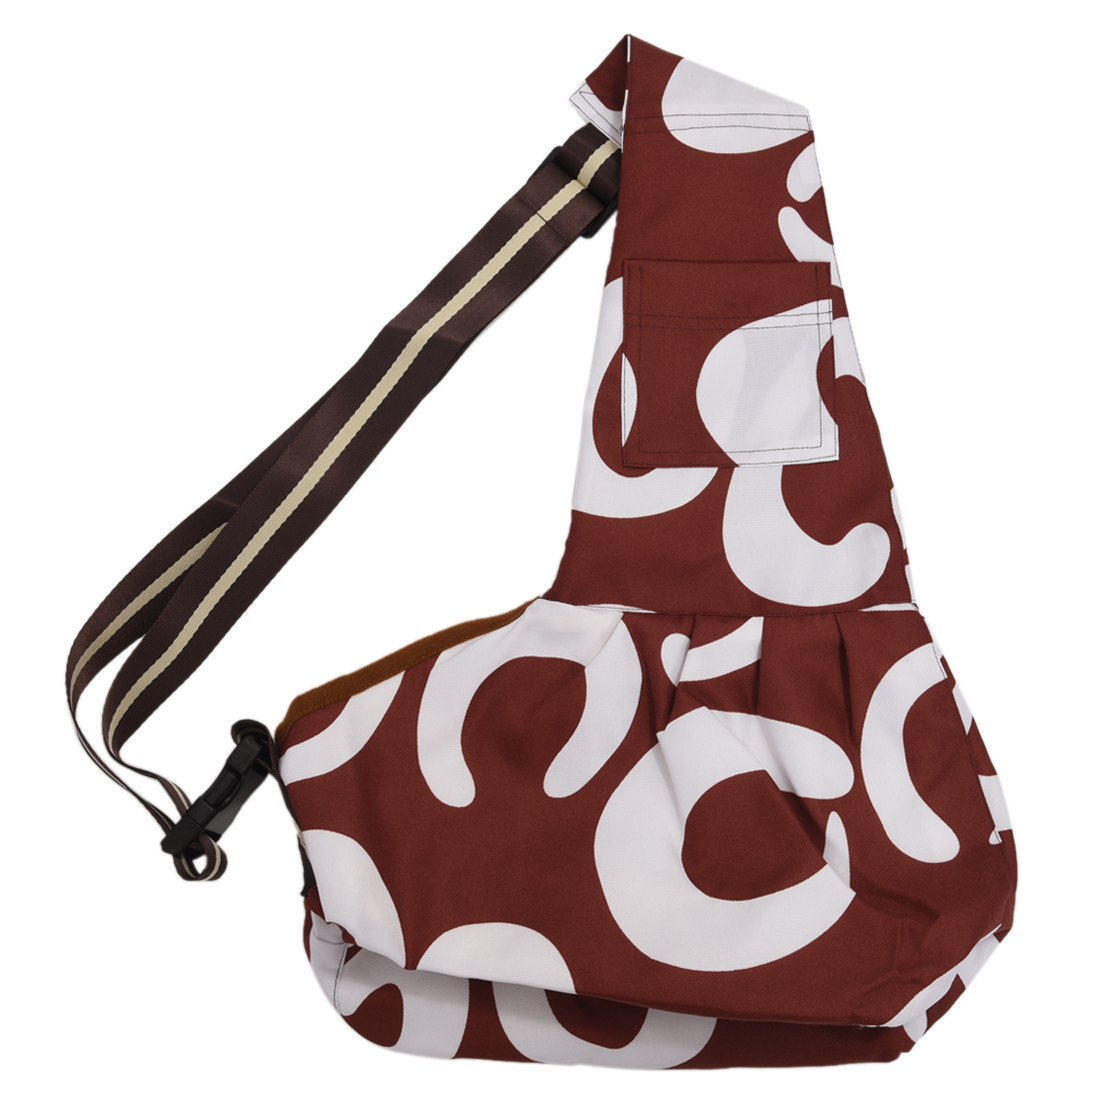 5) TEXU  Bandolier bag Carrying bag for Pet Oxford Animal Bag FOR Cat Dog Brown pet carrier bag for cat dog medium size brown